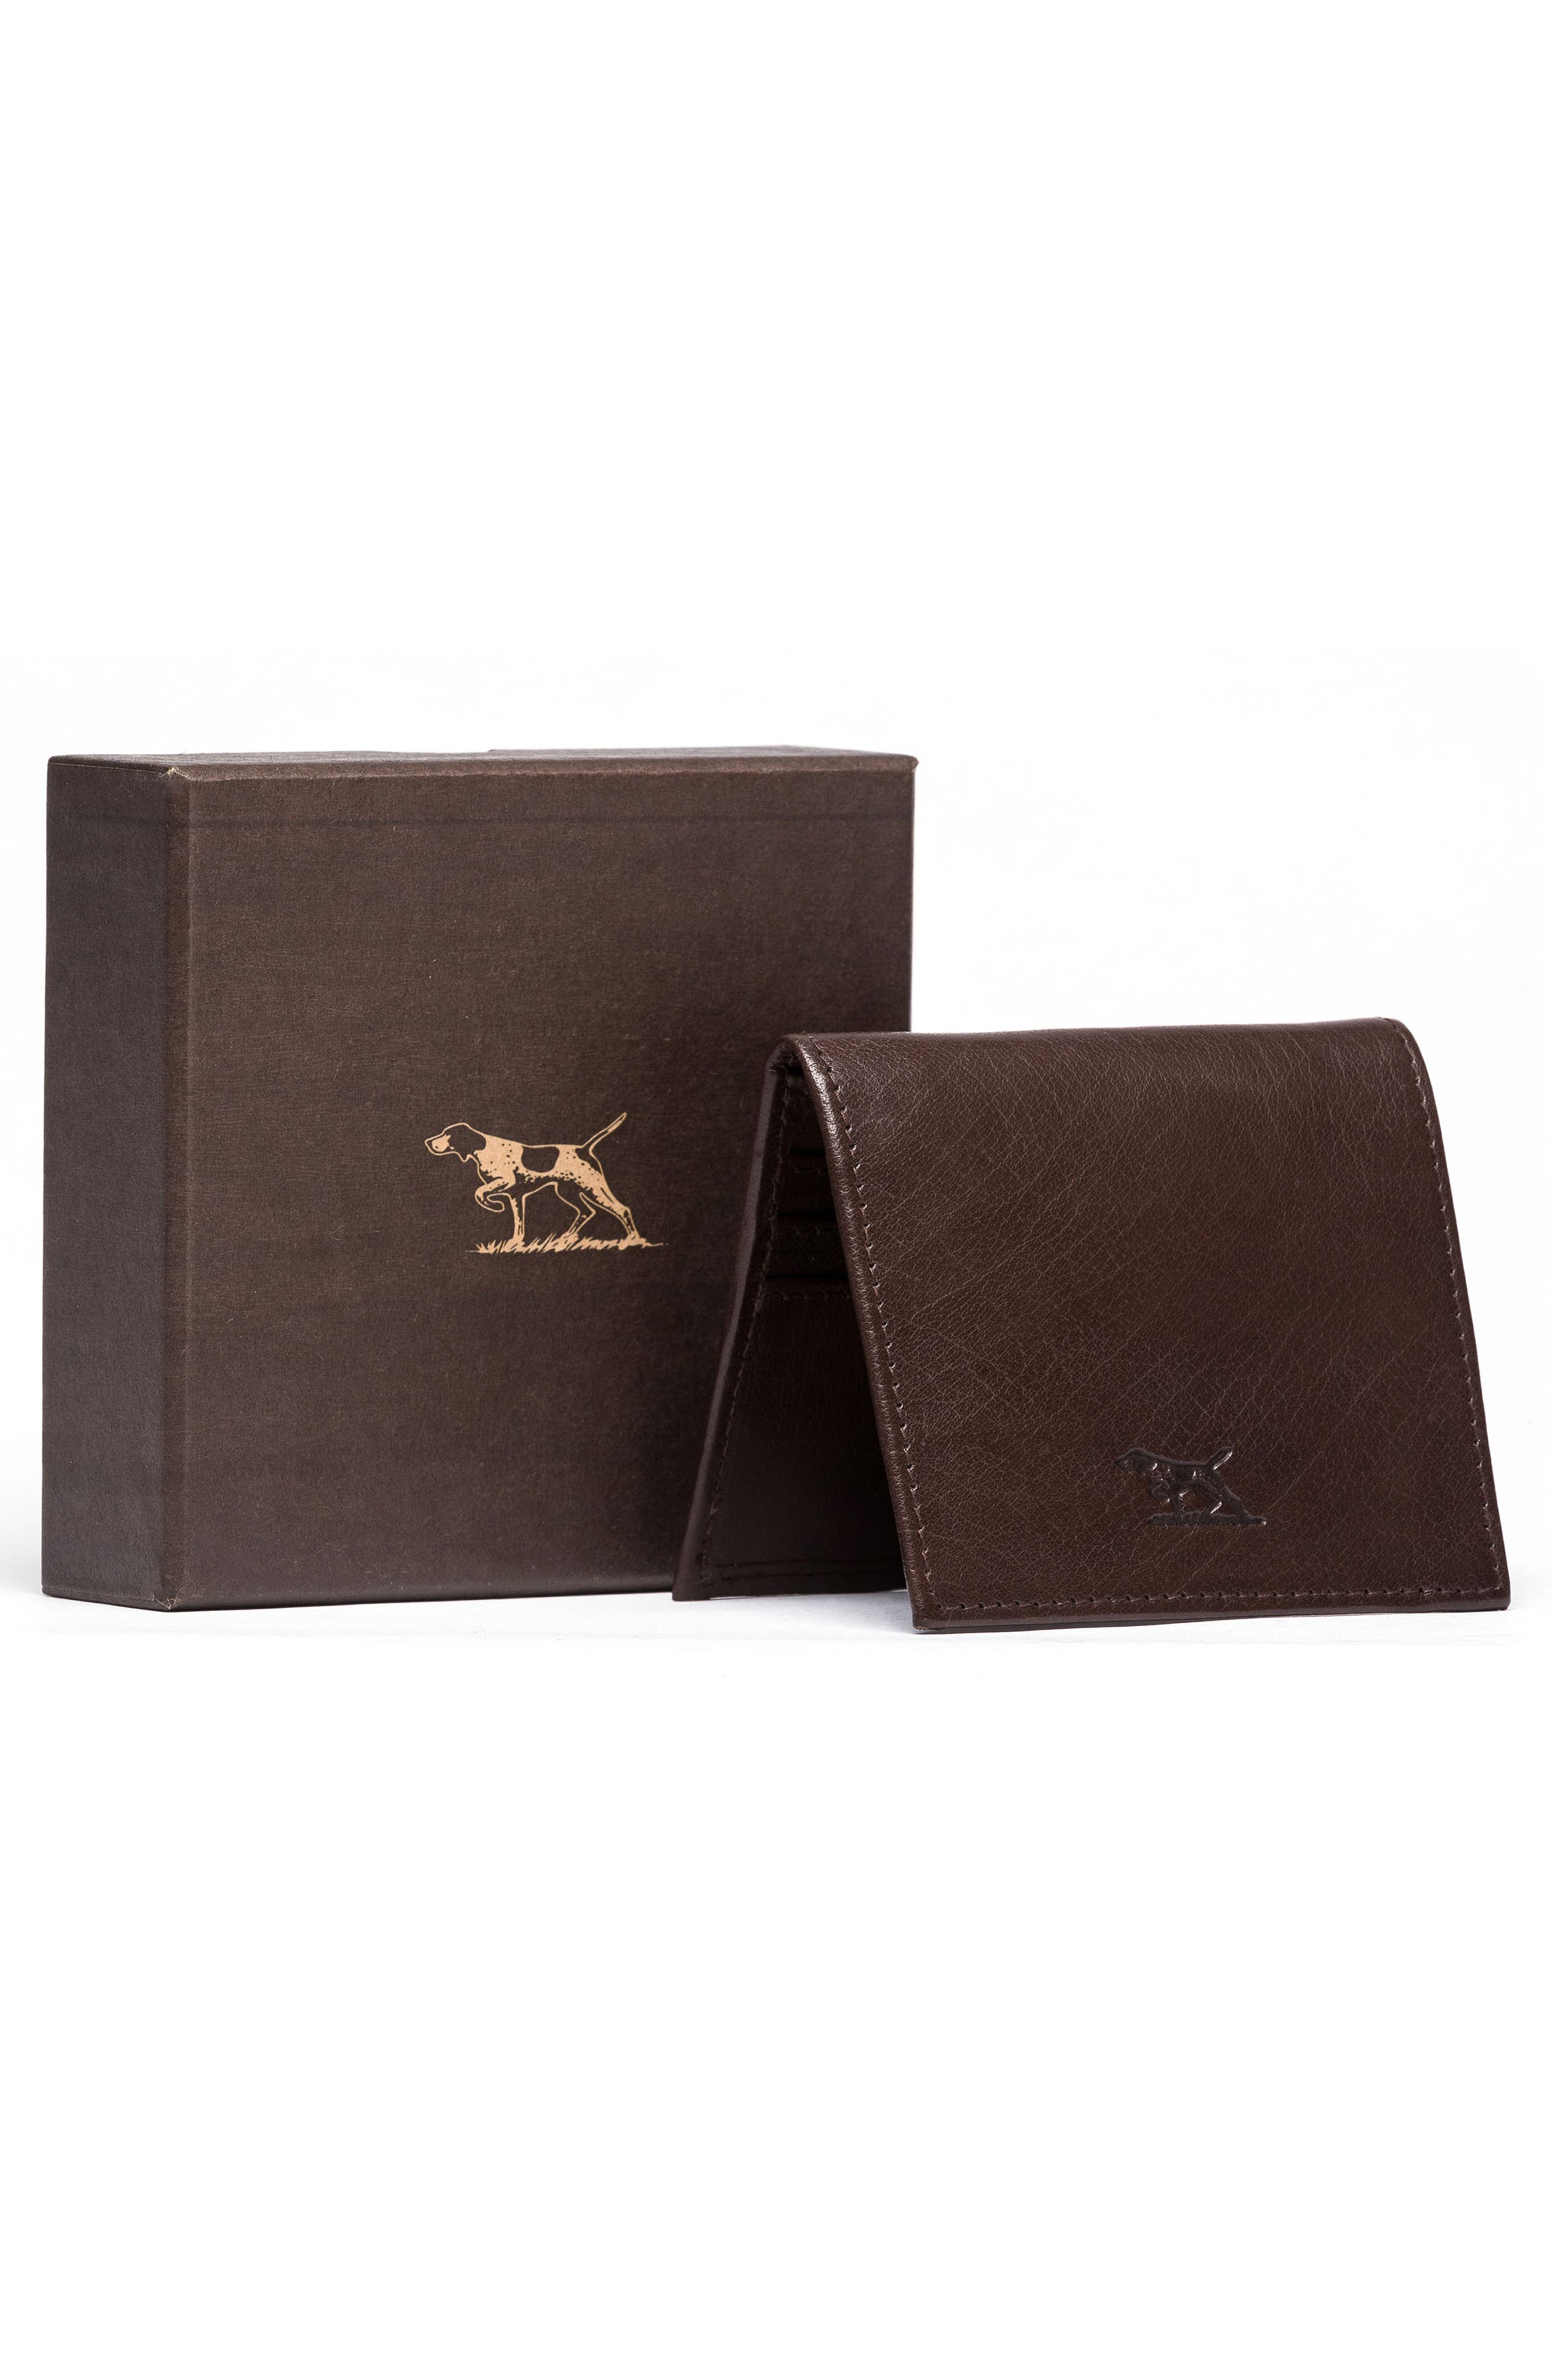 Four Mile Bay Leather Wallet,                             Alternate thumbnail 3, color,                             247